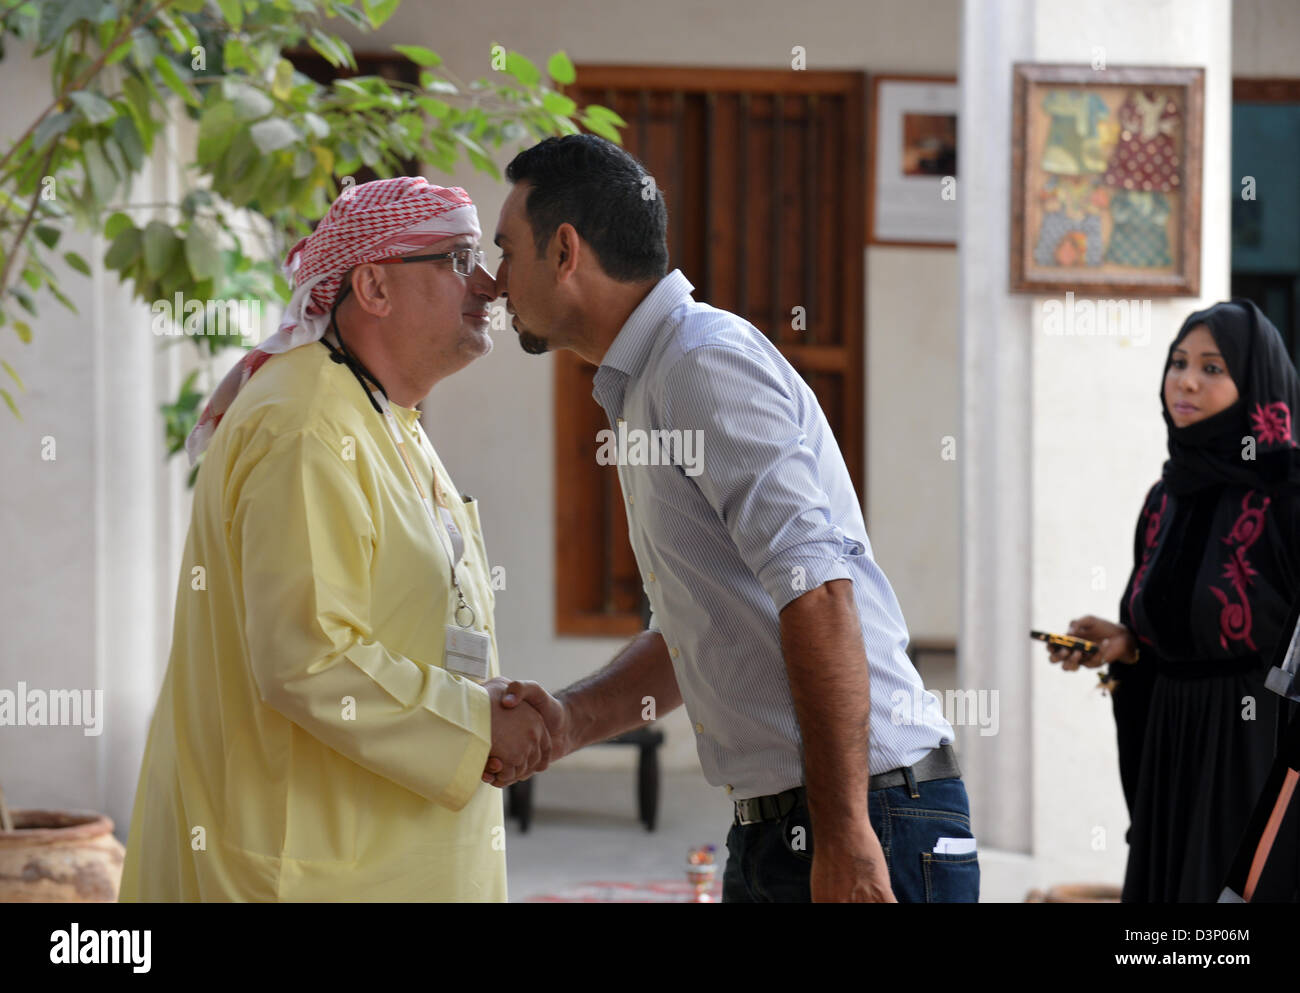 Two Arab Men Greeting Each Other They Are Familiar They Rub Their